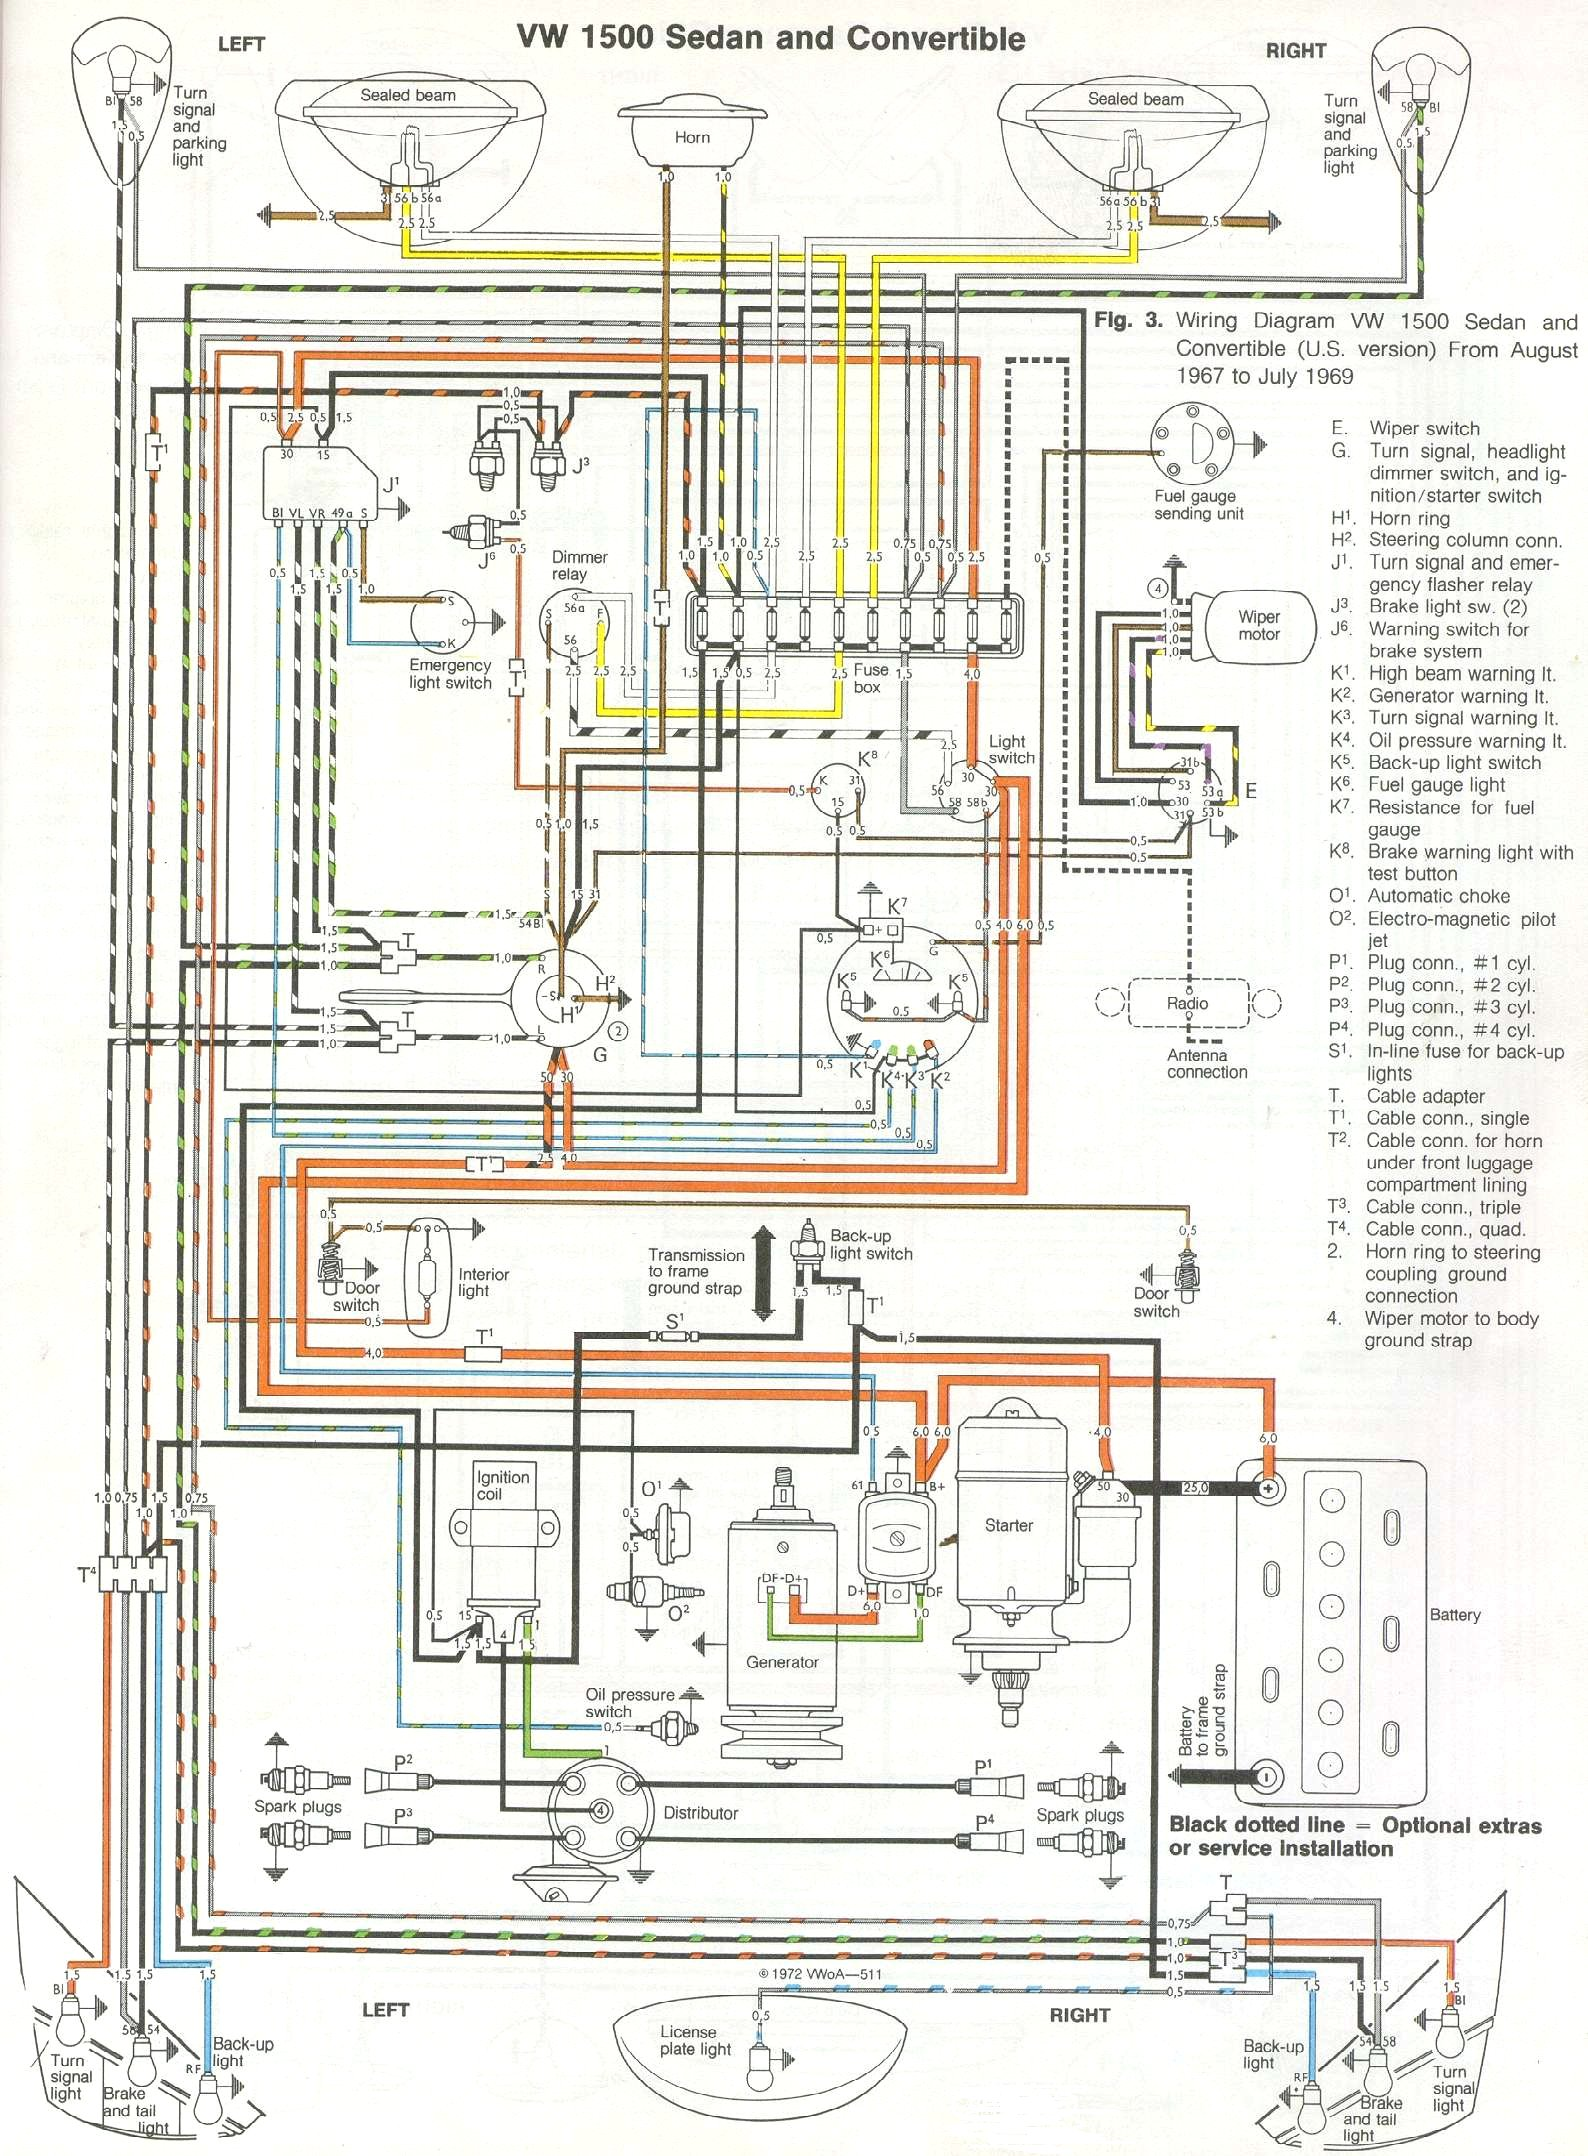 1969 71 Beetle Wiring Diagram Thegoldenbug Com 2000 VW Beetle Fuse Chart Vw  Beetle Fuse Diagram